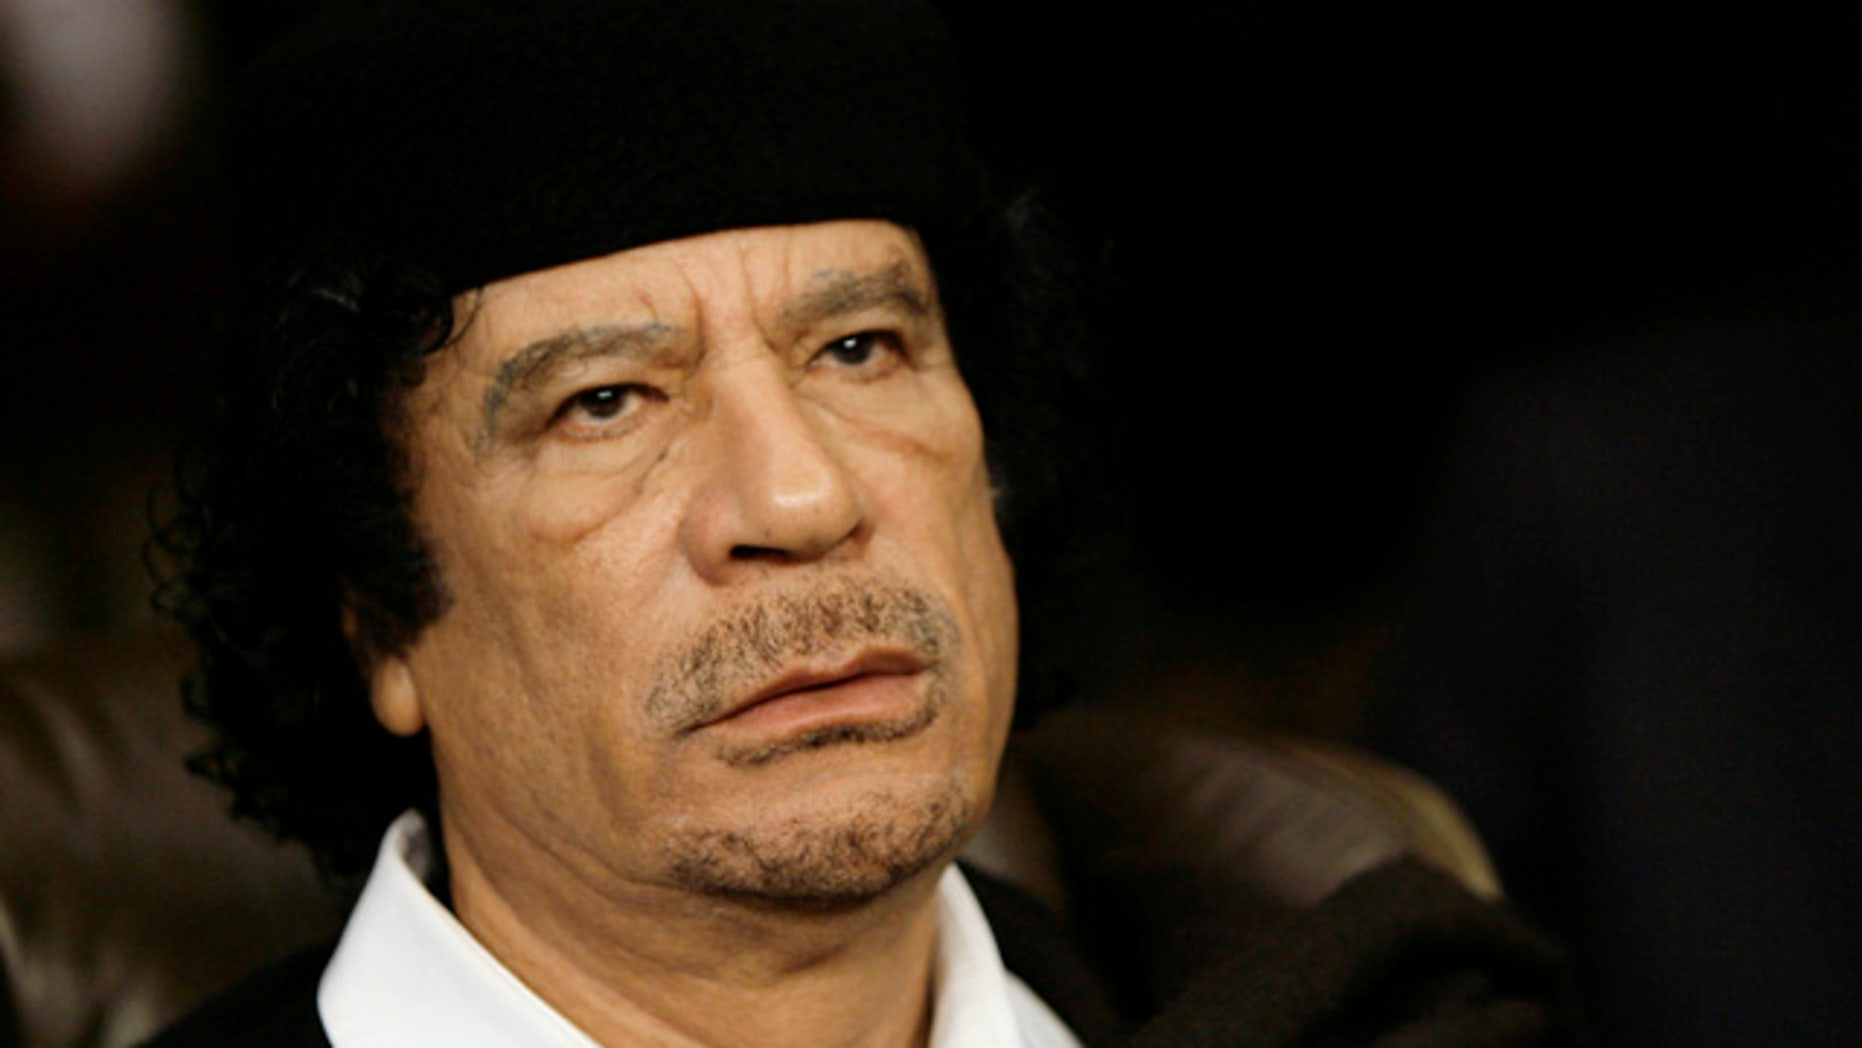 FILE 2008: Libyan leader Moammar al-Qaddafi attends the closing session of the annual summit of the Arab League in Damascus, Syria.